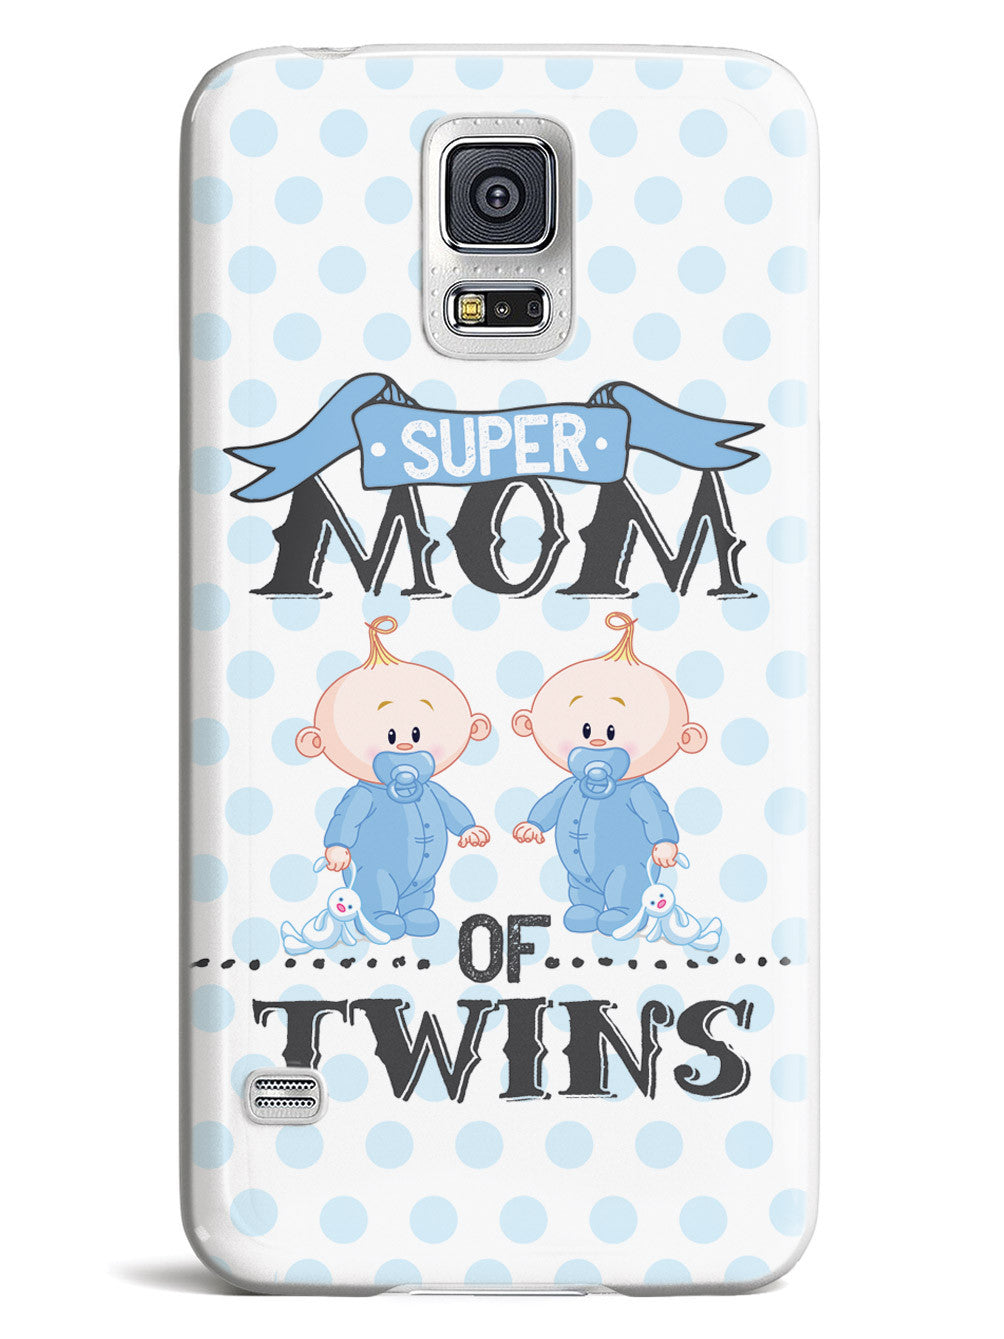 Super Mom of Twins - Boys Case